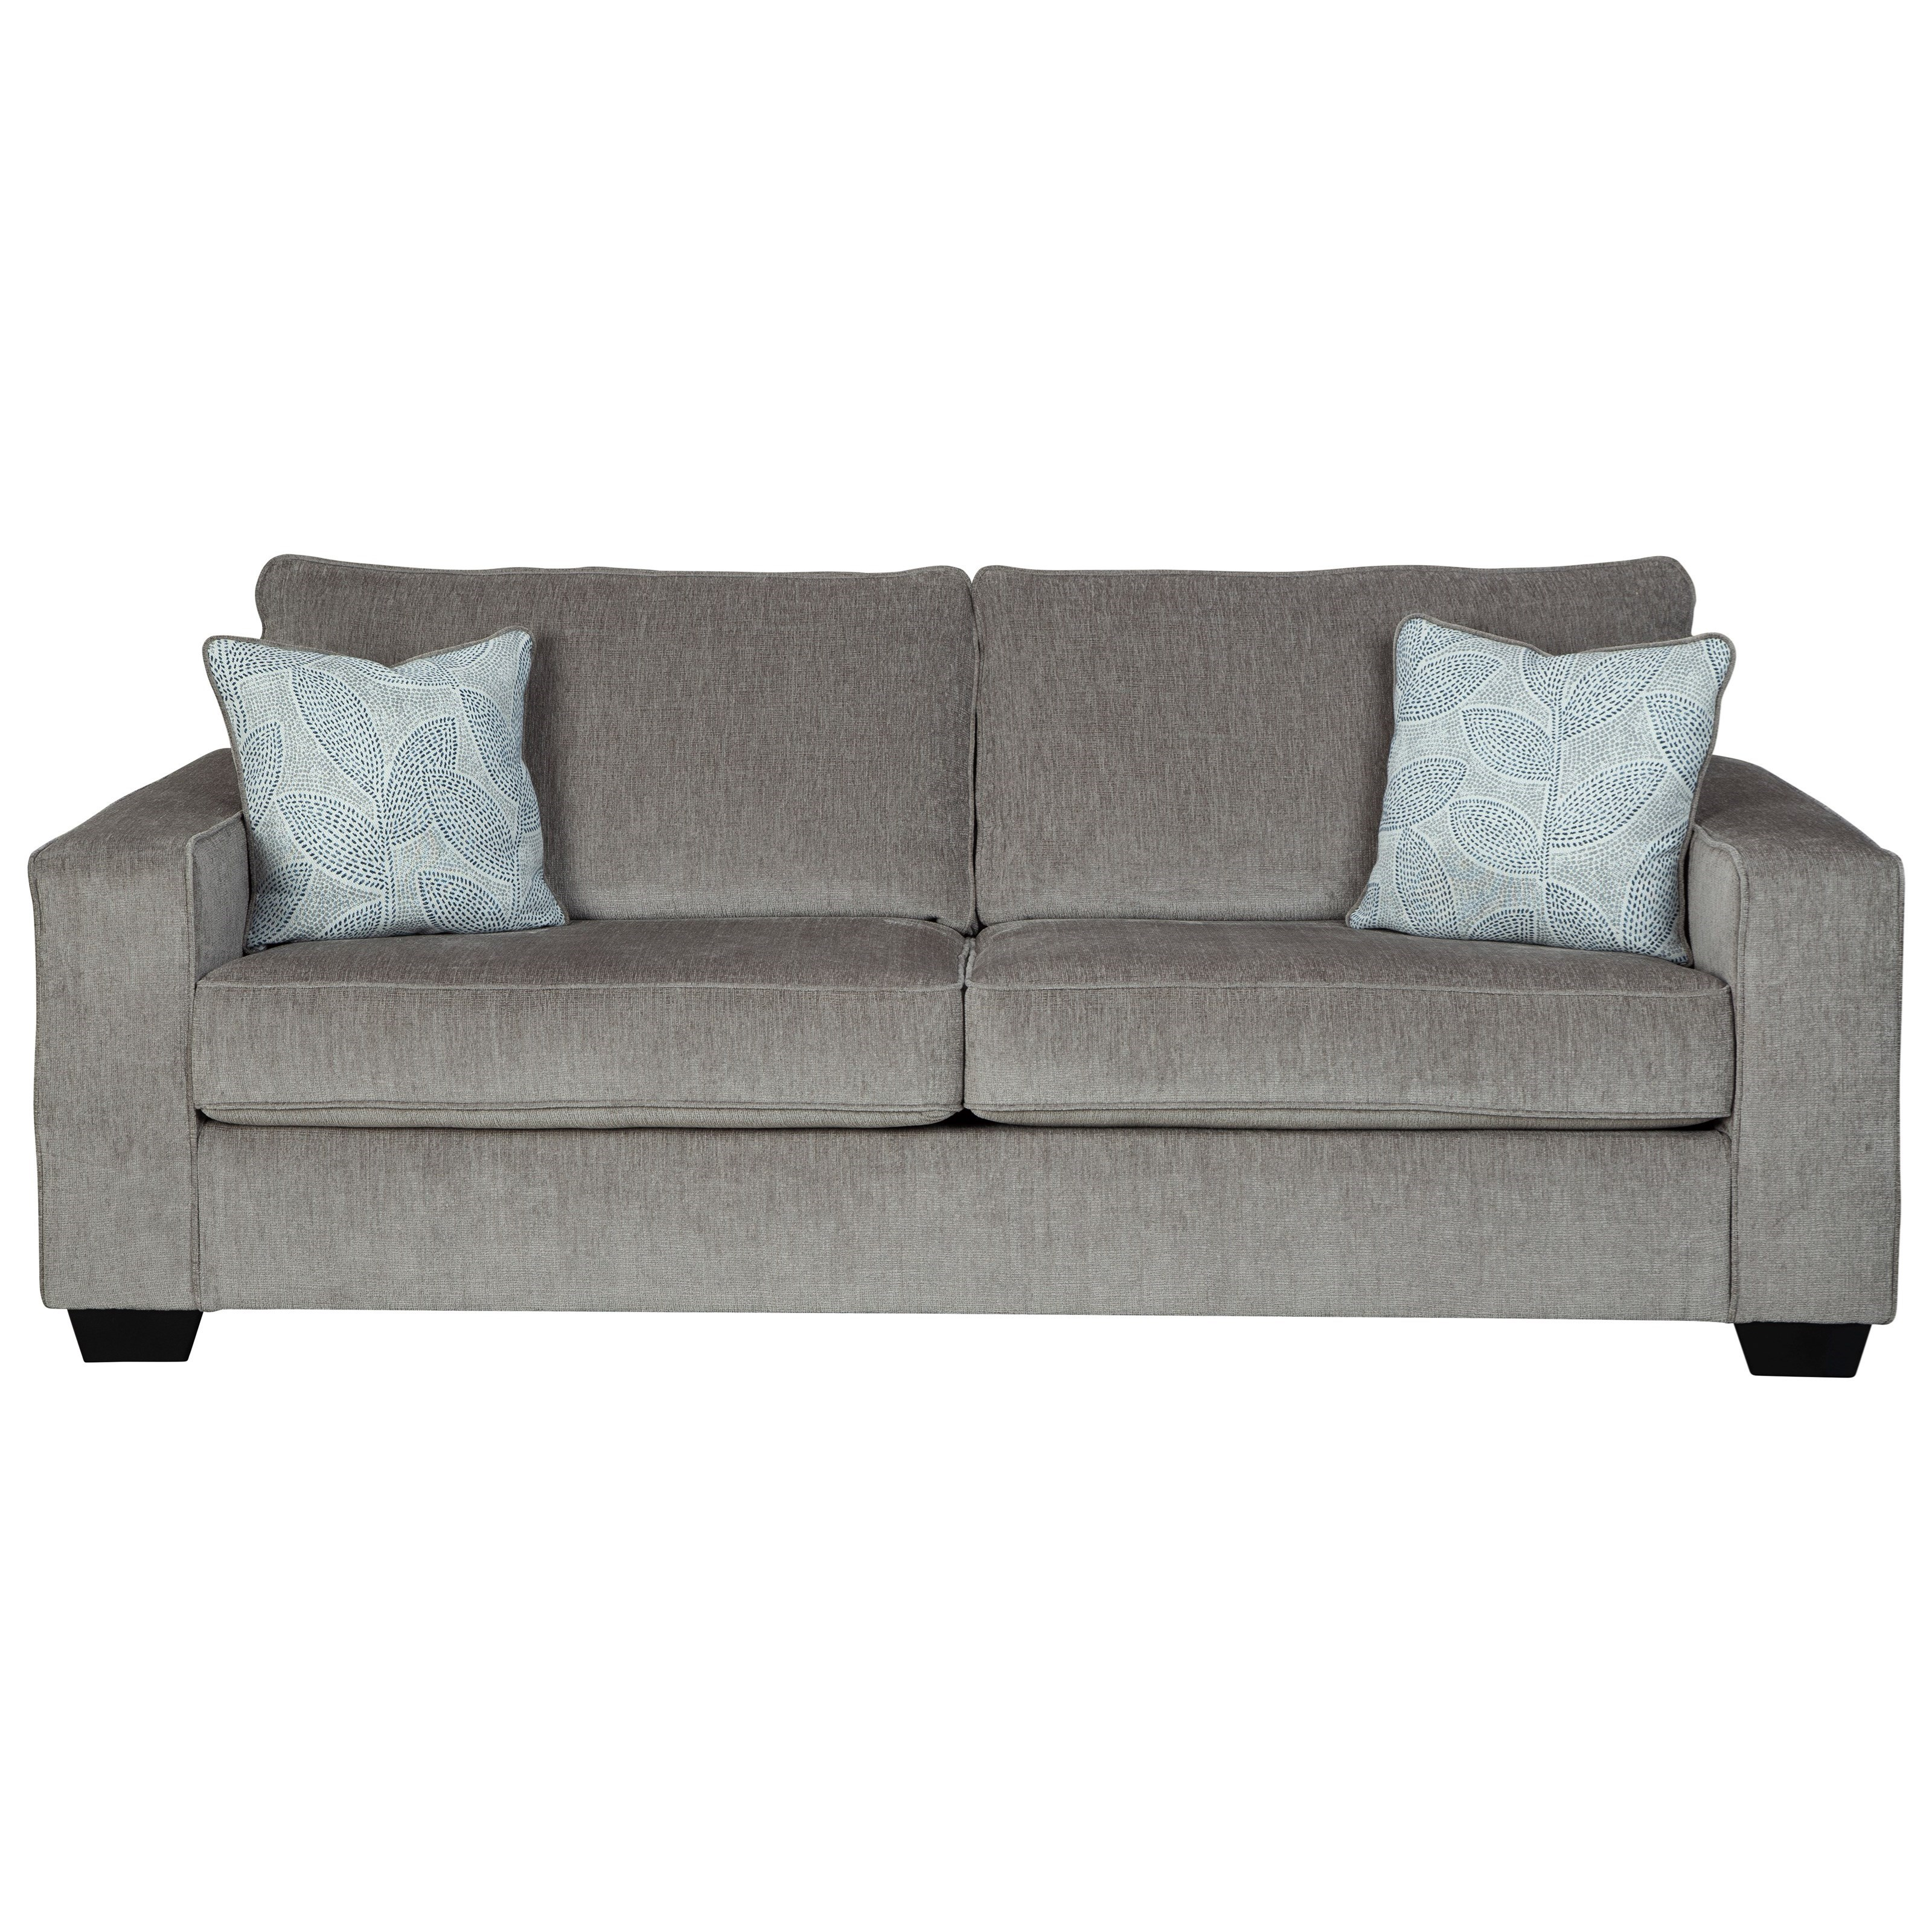 Altari Queen Sofa Sleeper by Signature Design by Ashley at HomeWorld Furniture